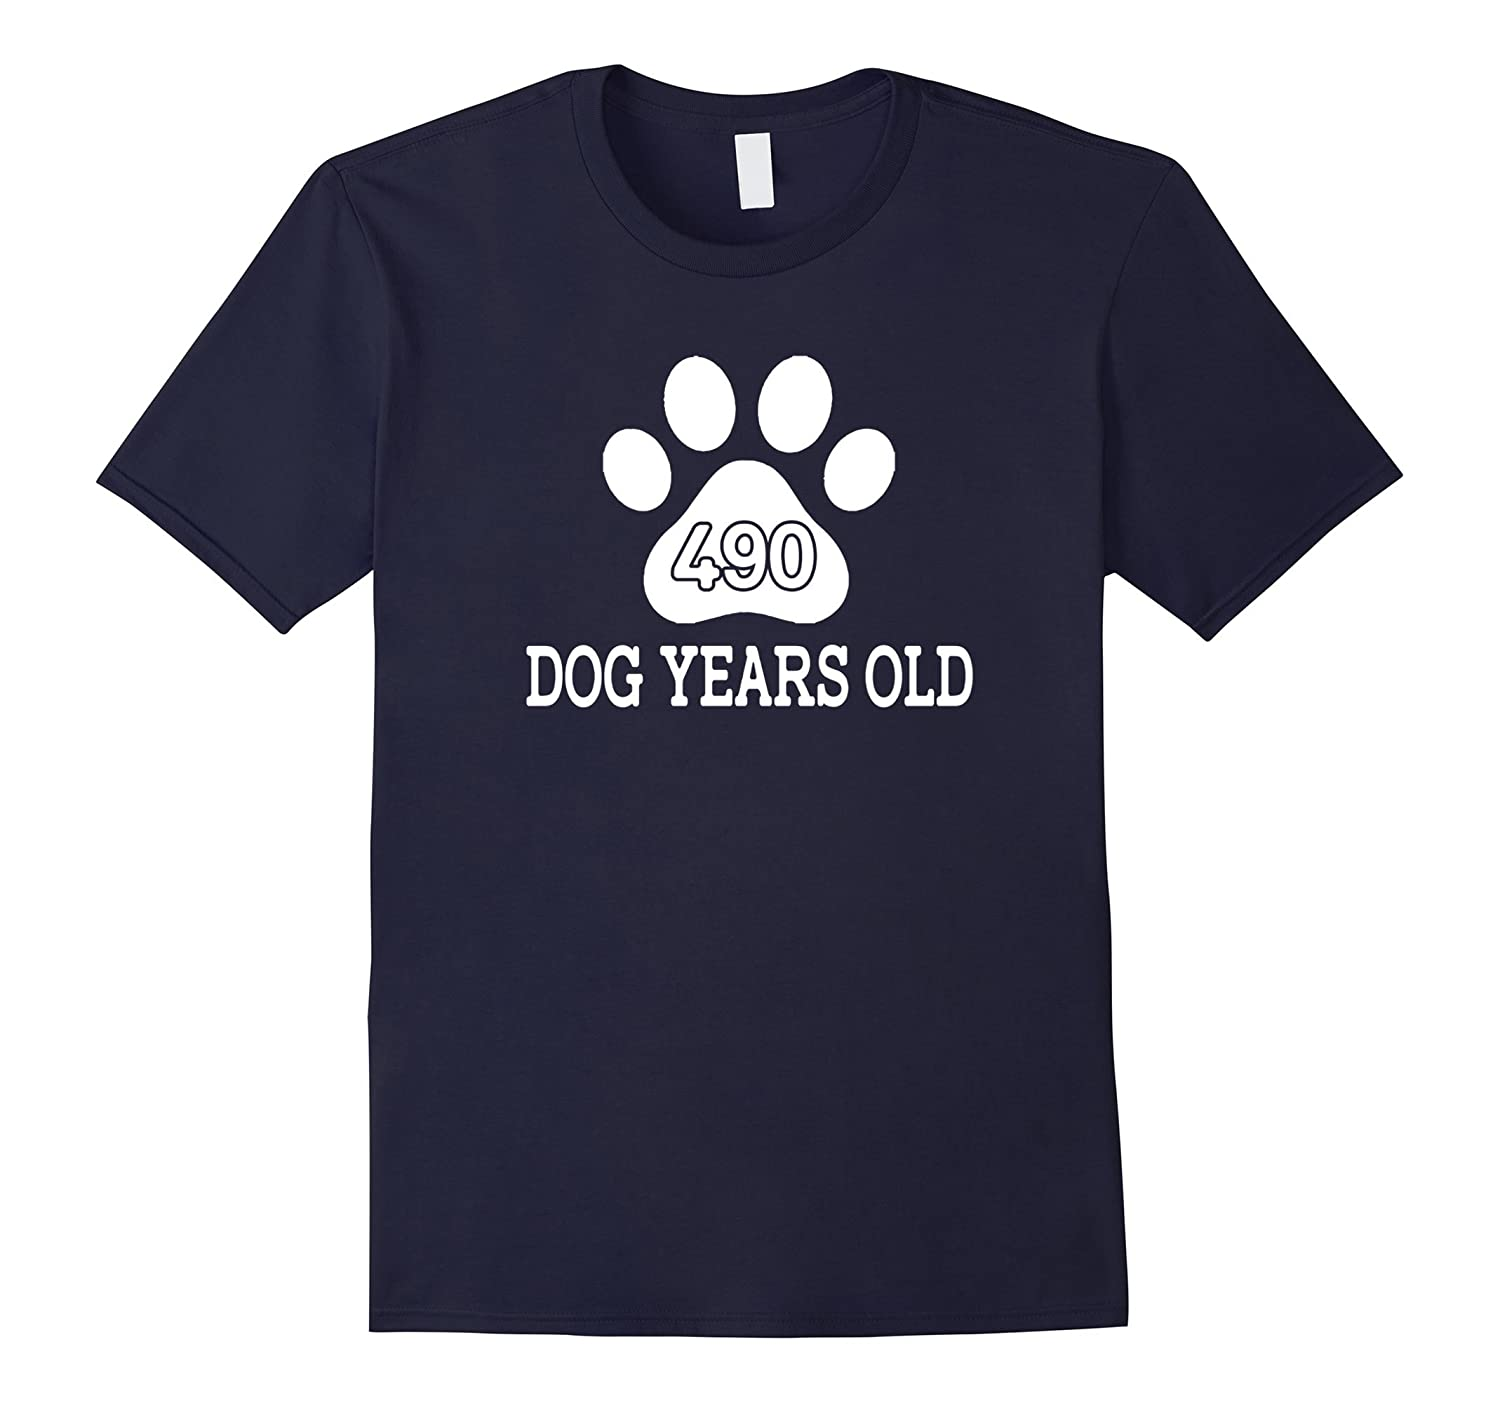 490 Dog Years Old Funny 70th Birthday T-Shirt-azvn